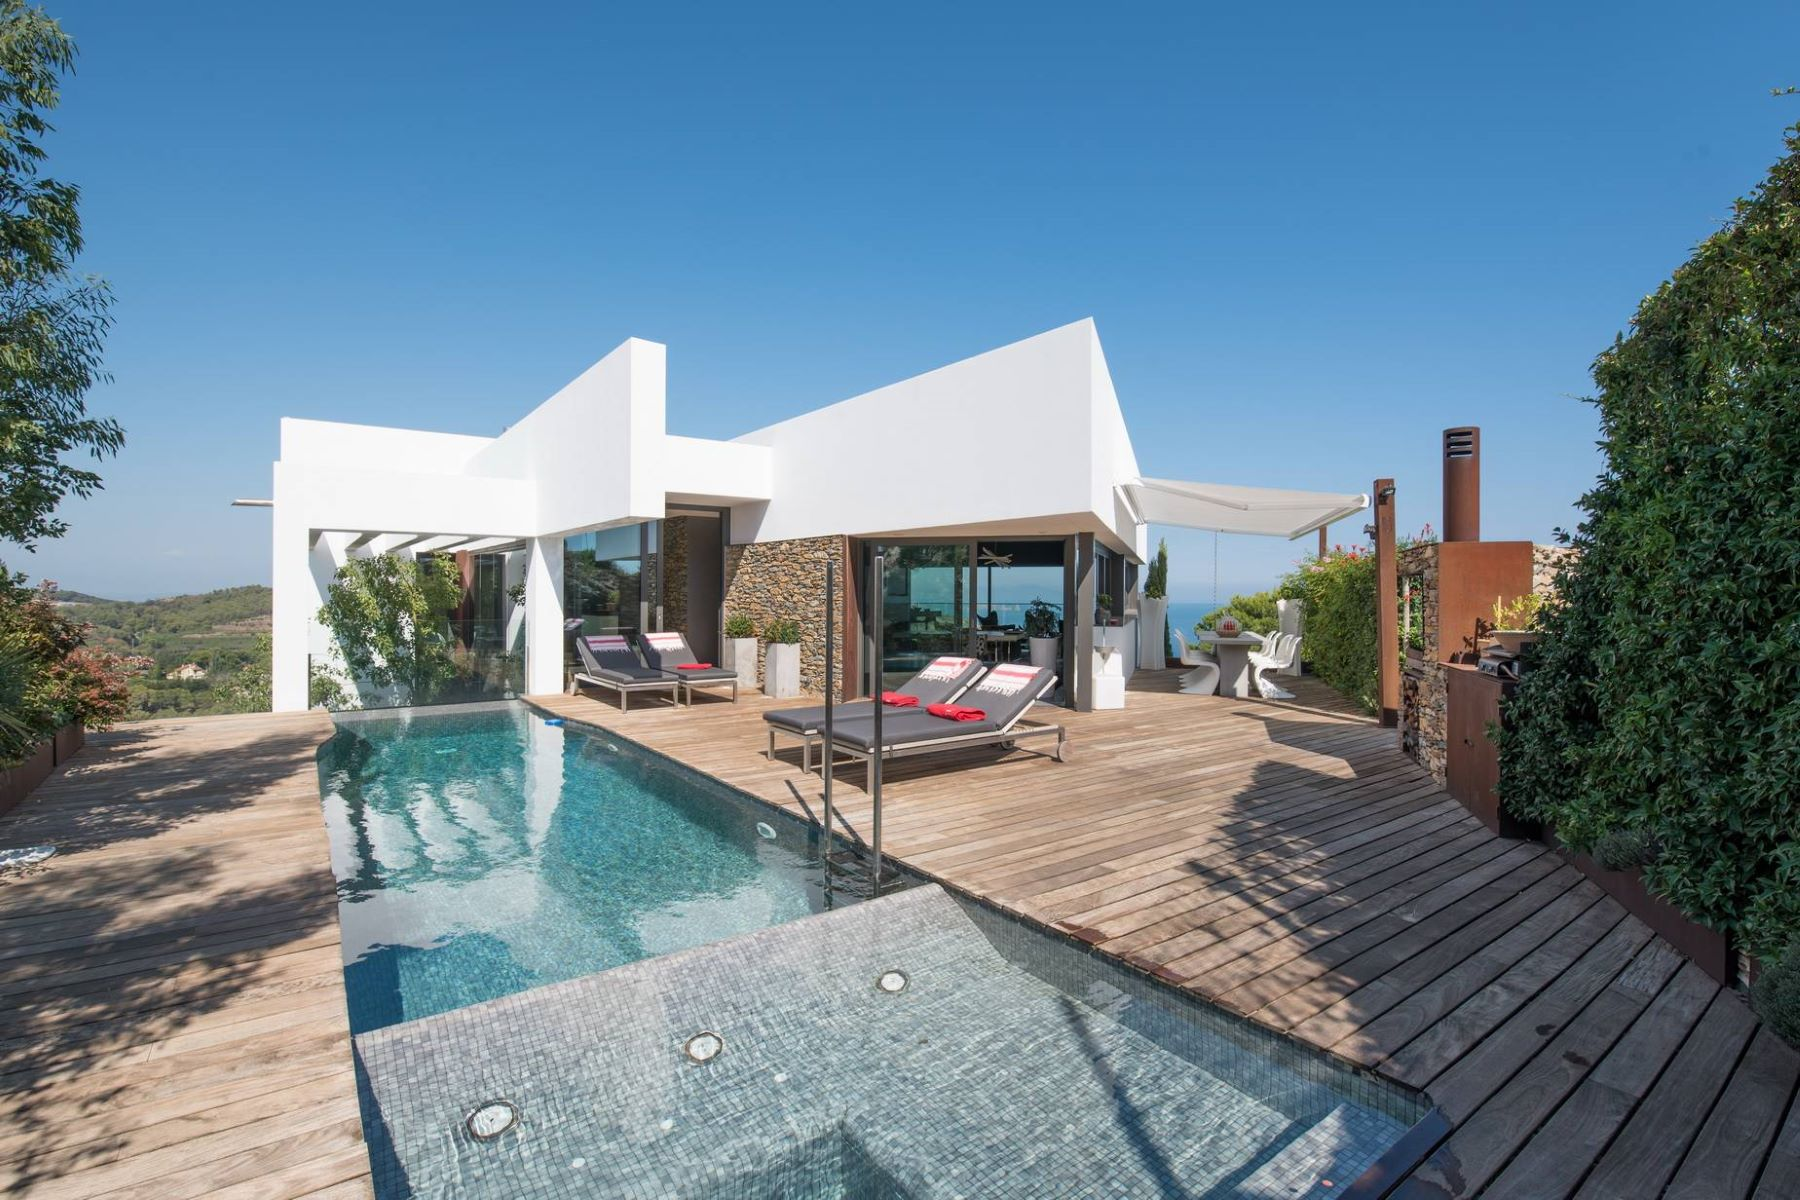 Single Family Home for Sale at The ultimate luxury, a house for sale with the best views in Begur Begur, Costa Brava, 17255 Spain